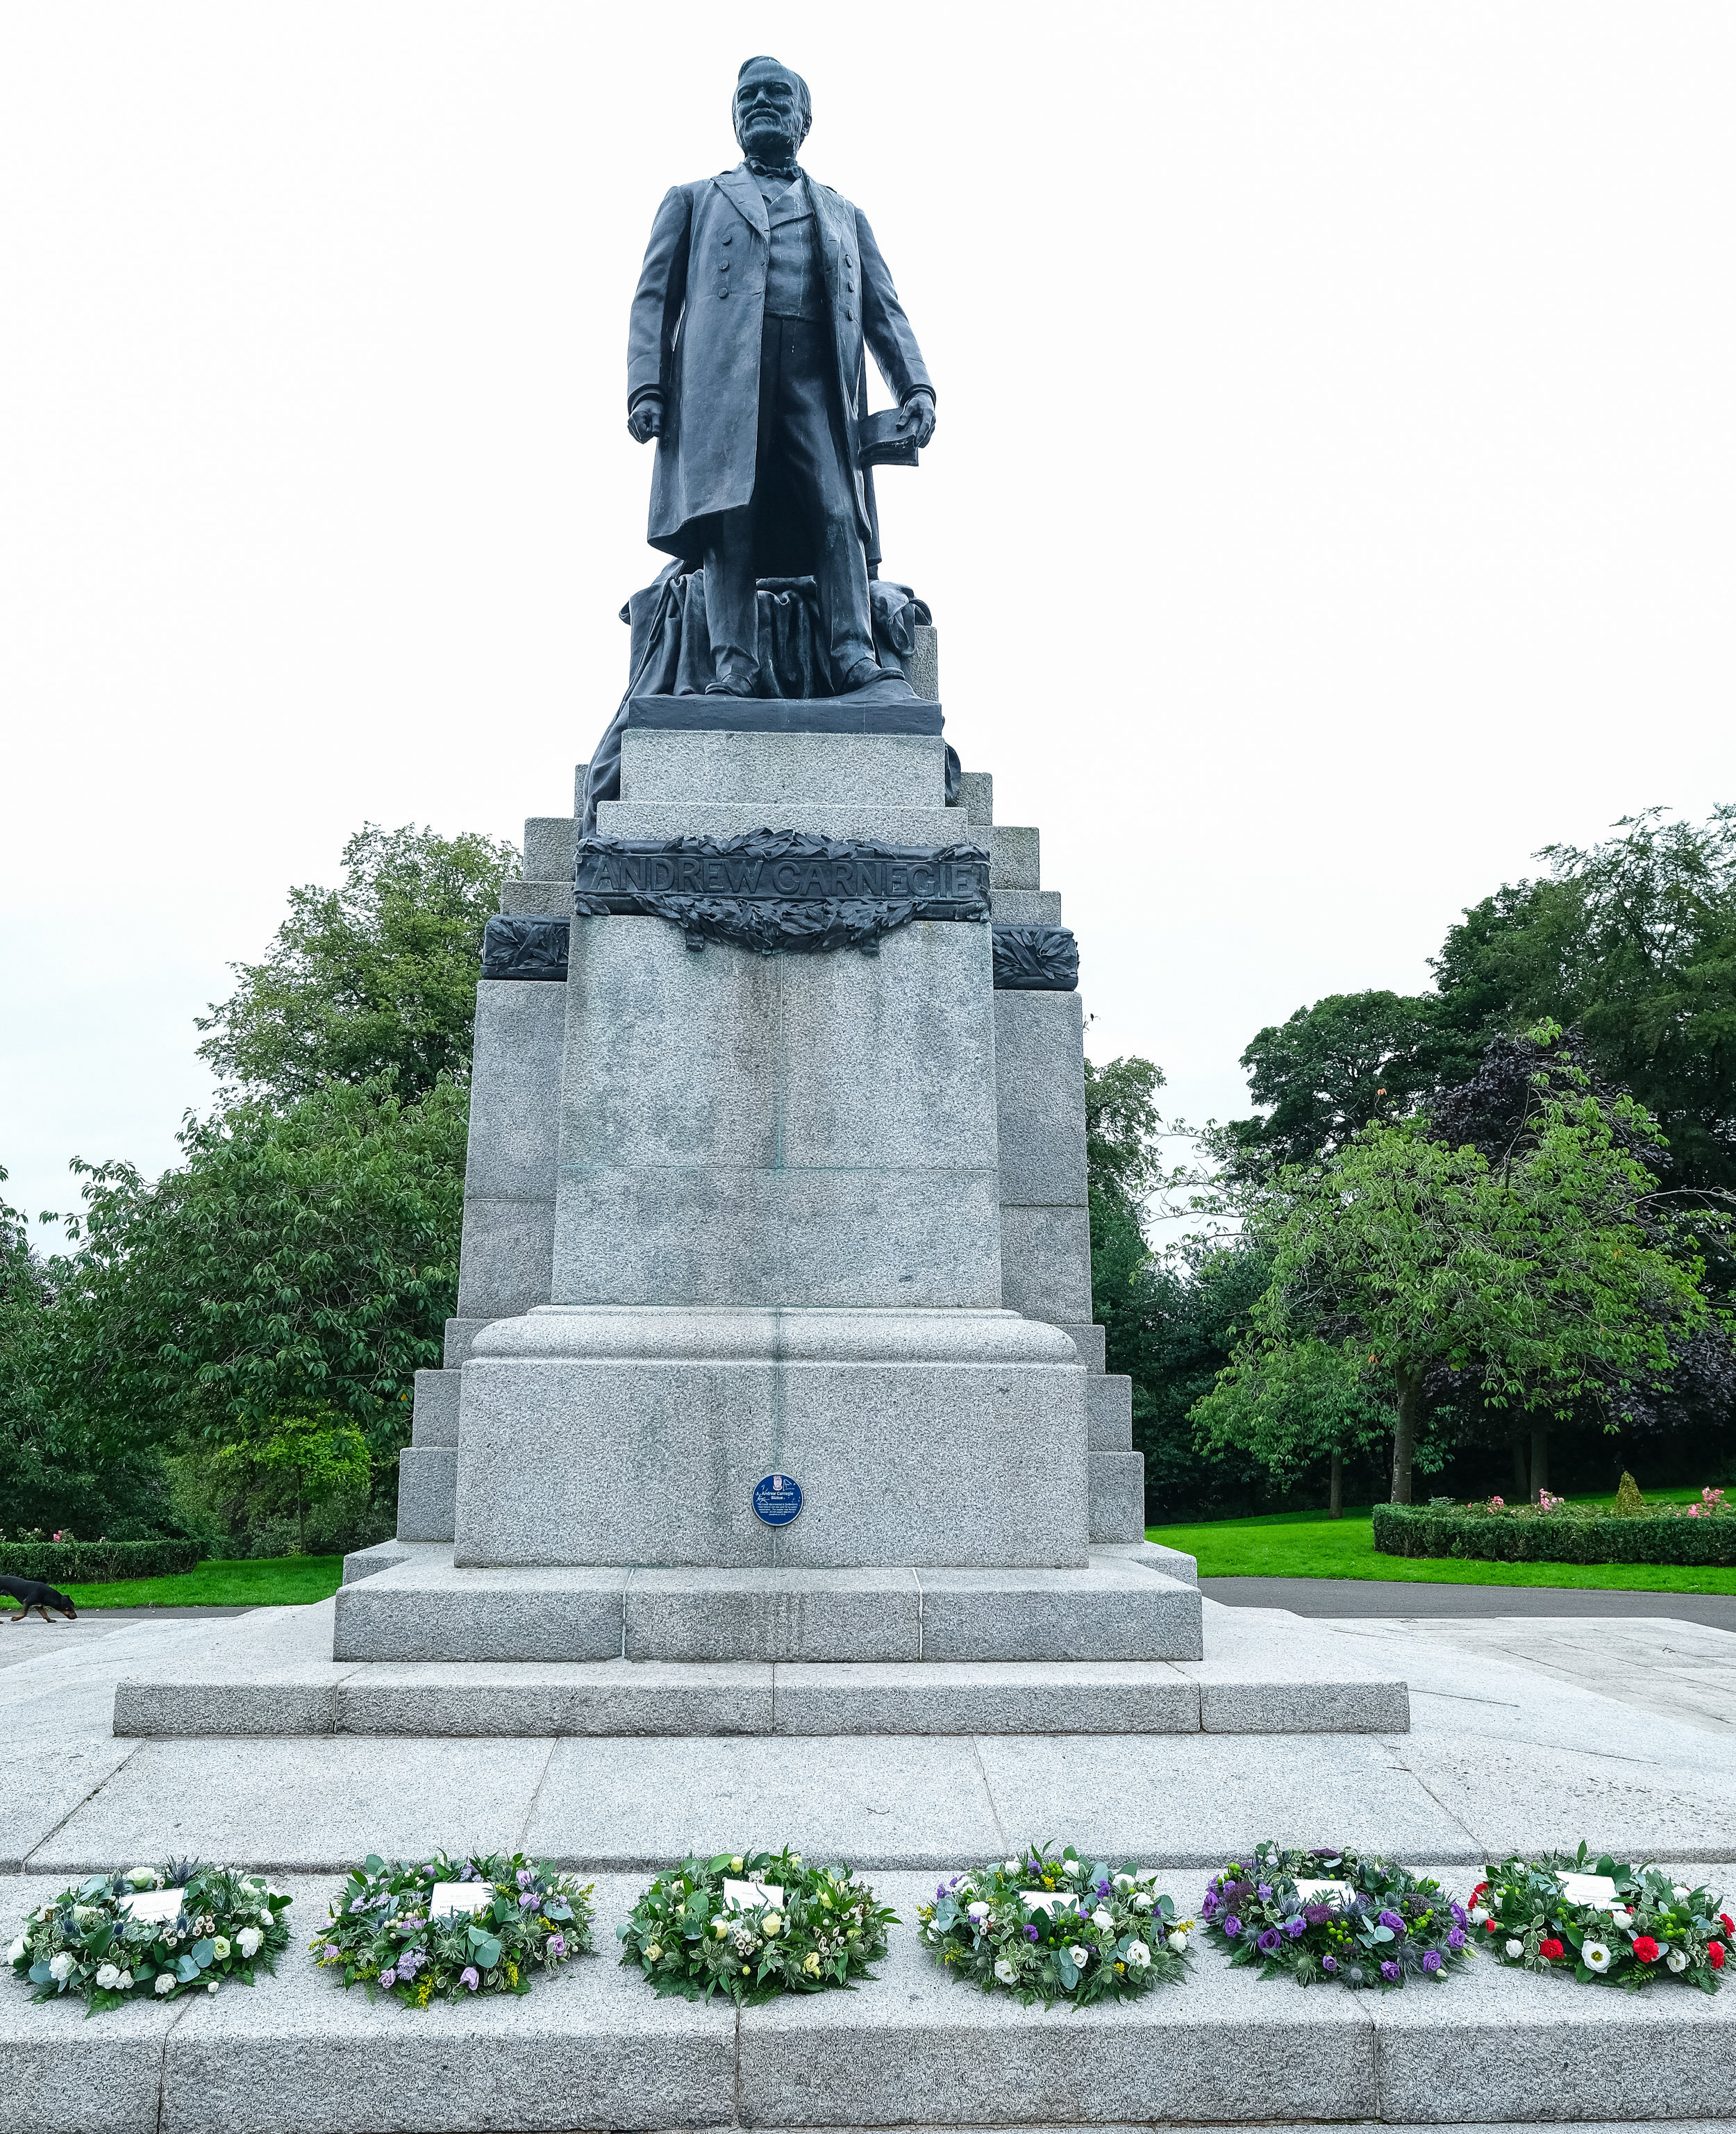 Andrew Carnegie's statue with commemorative wreaths